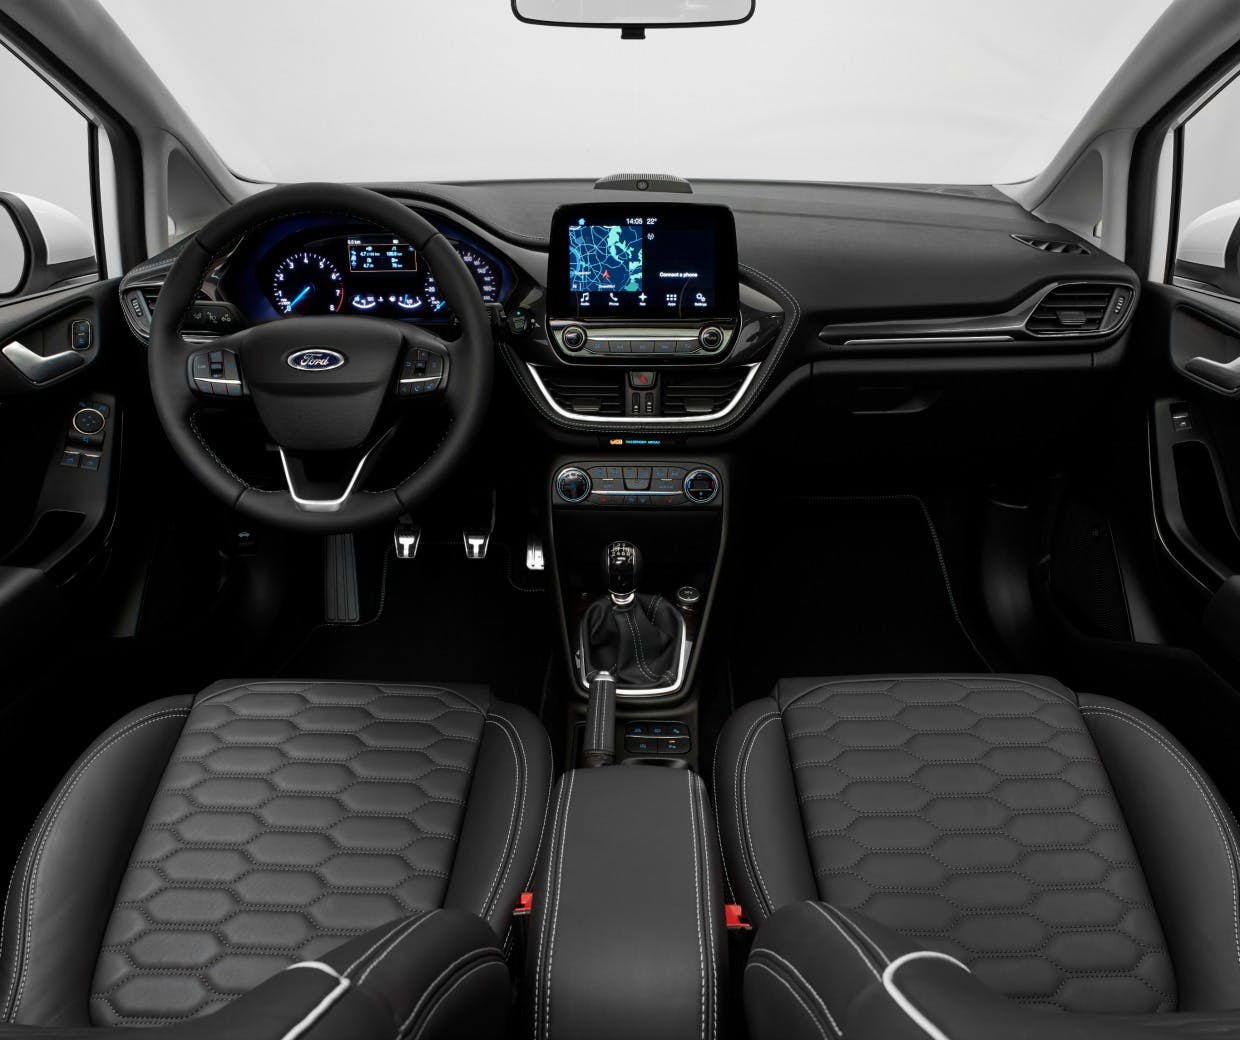 New Ford Vehicles For 2016: Ford Is Launching Cars With Personality To Change Perceptions